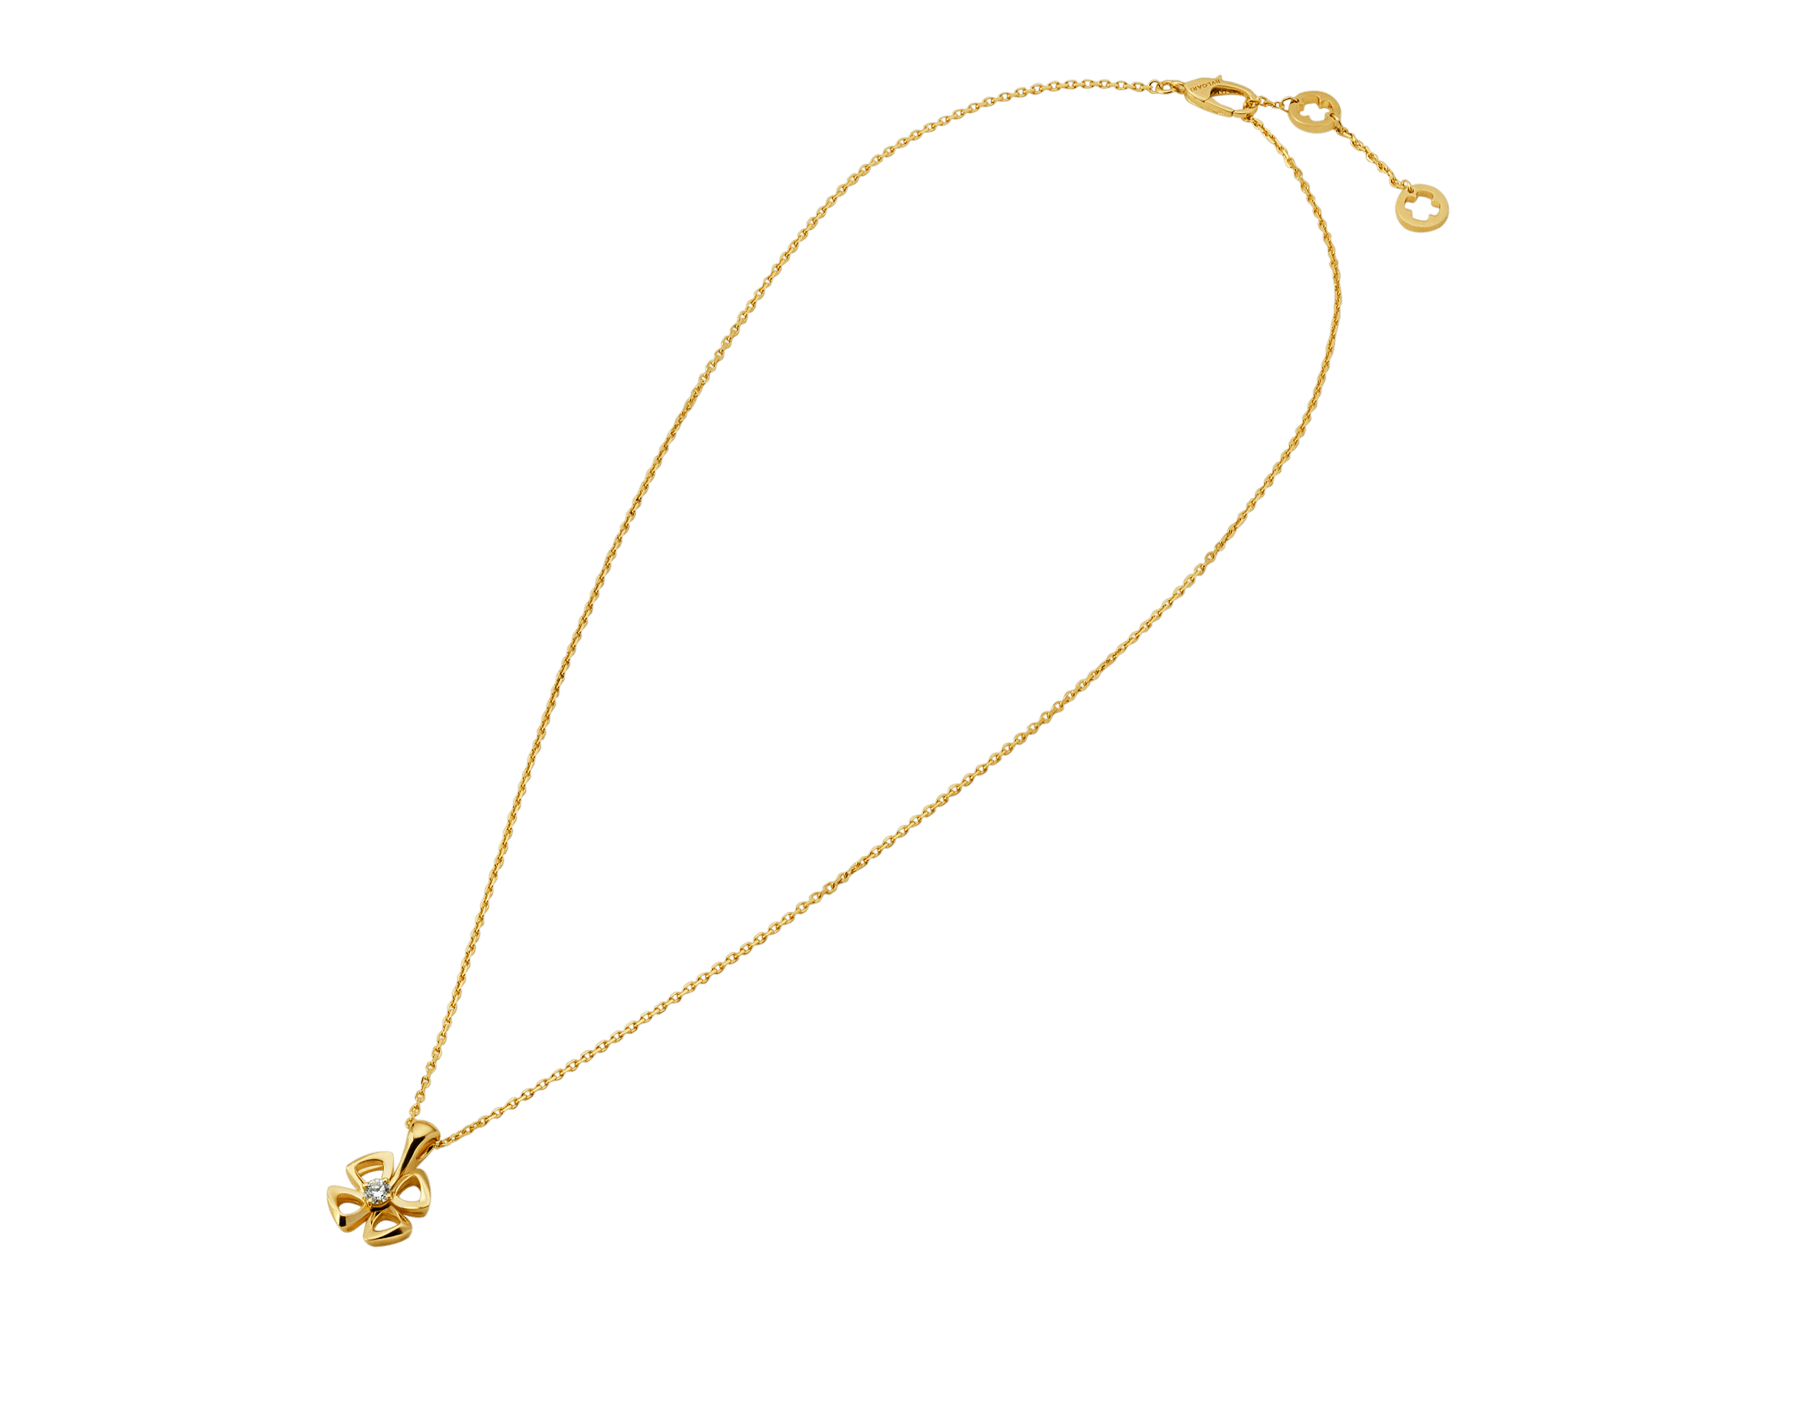 Fiorever 18 kt yellow gold necklace set with a central diamond. 357501 image 2